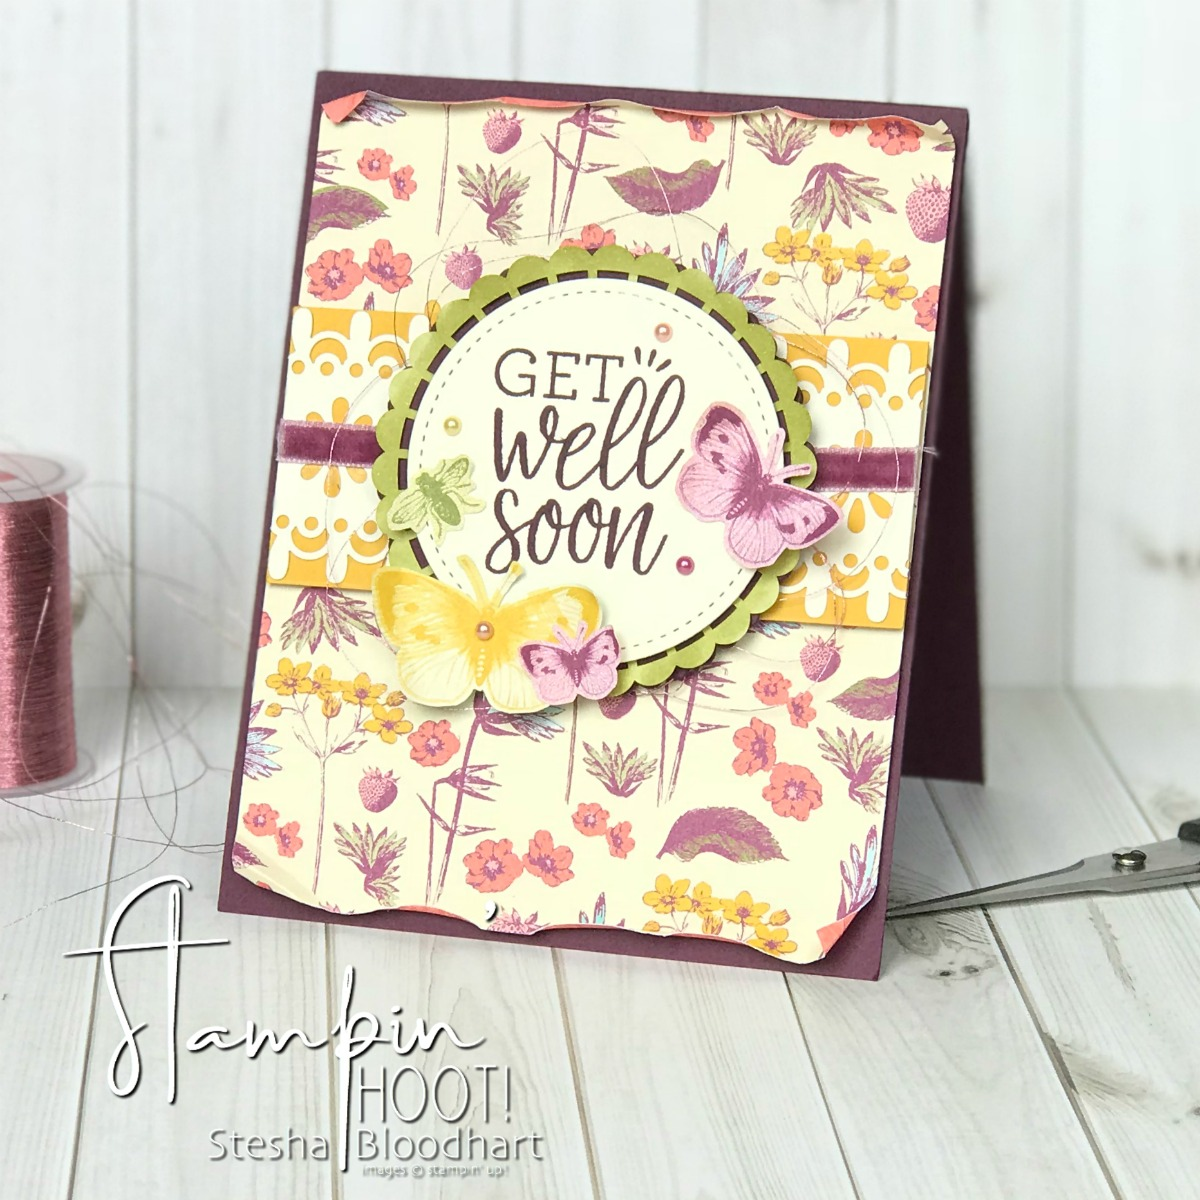 Healing Hugs Stamp Set and Tea Room Specialty Designer Series Paper by Stampin' Up! for #gdp148 Case the Designer. Card created by Stesha Bloodhart, Stampin' Hoot! #steshabloodhart #stampinhoot